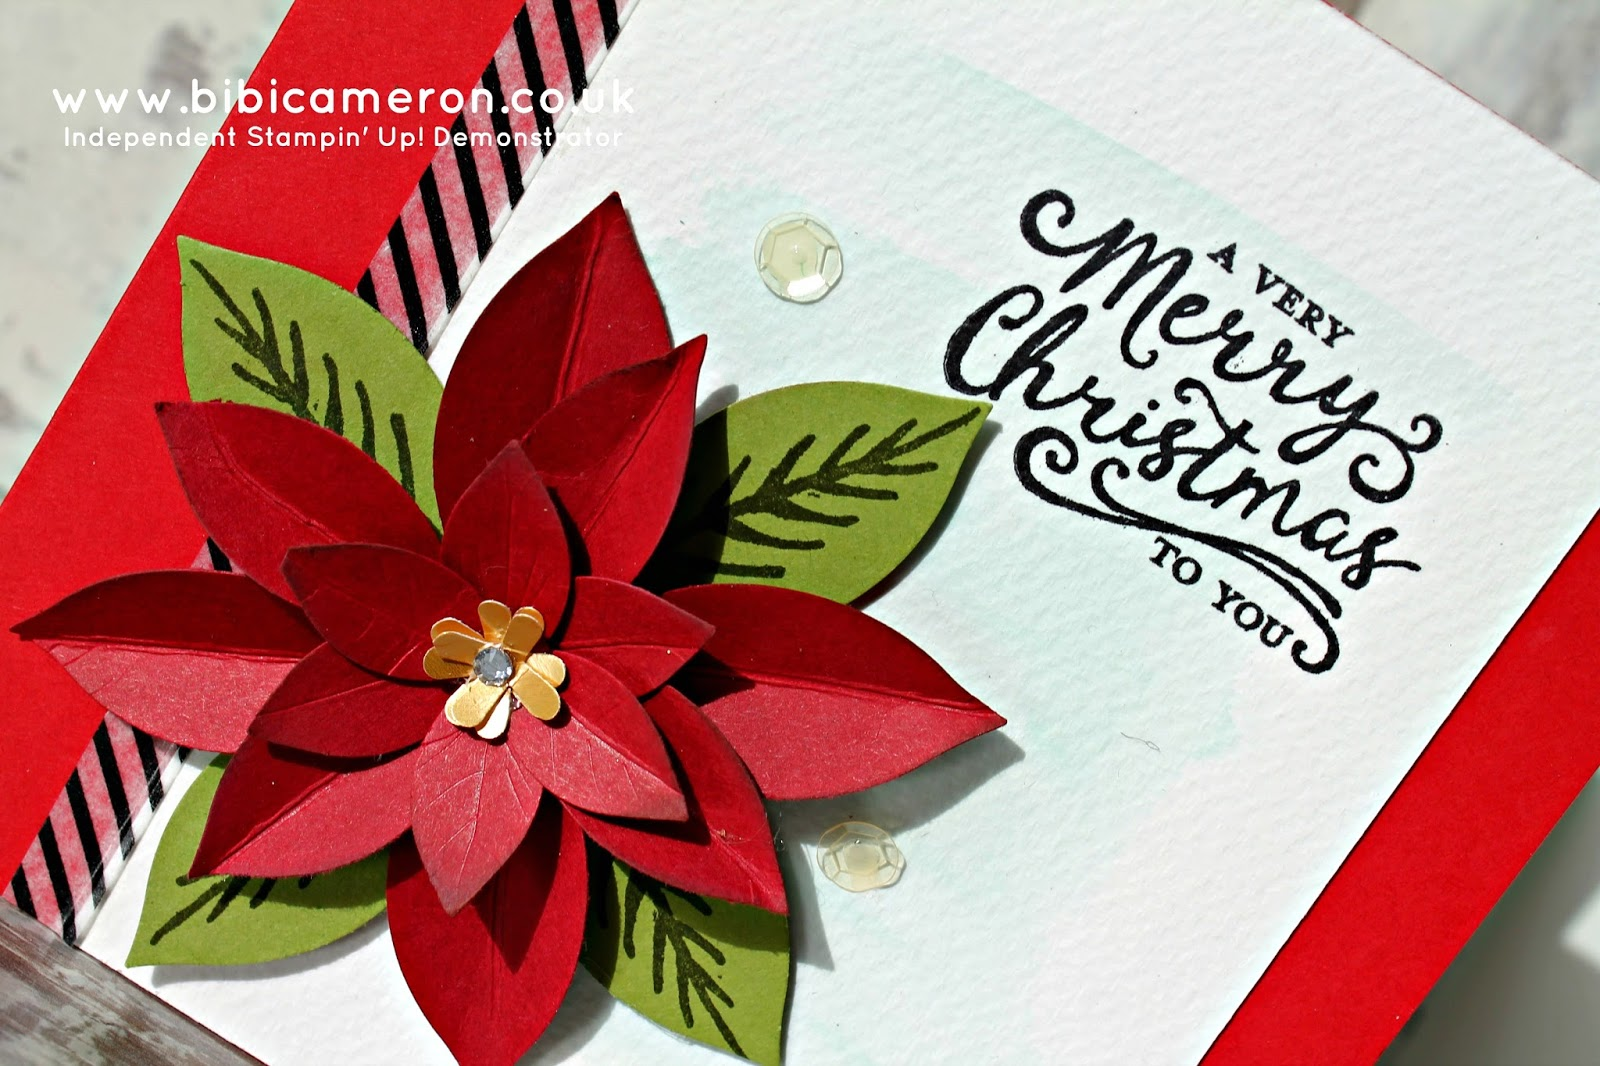 A week for Reason for the Season Bundle from Stampin Up!